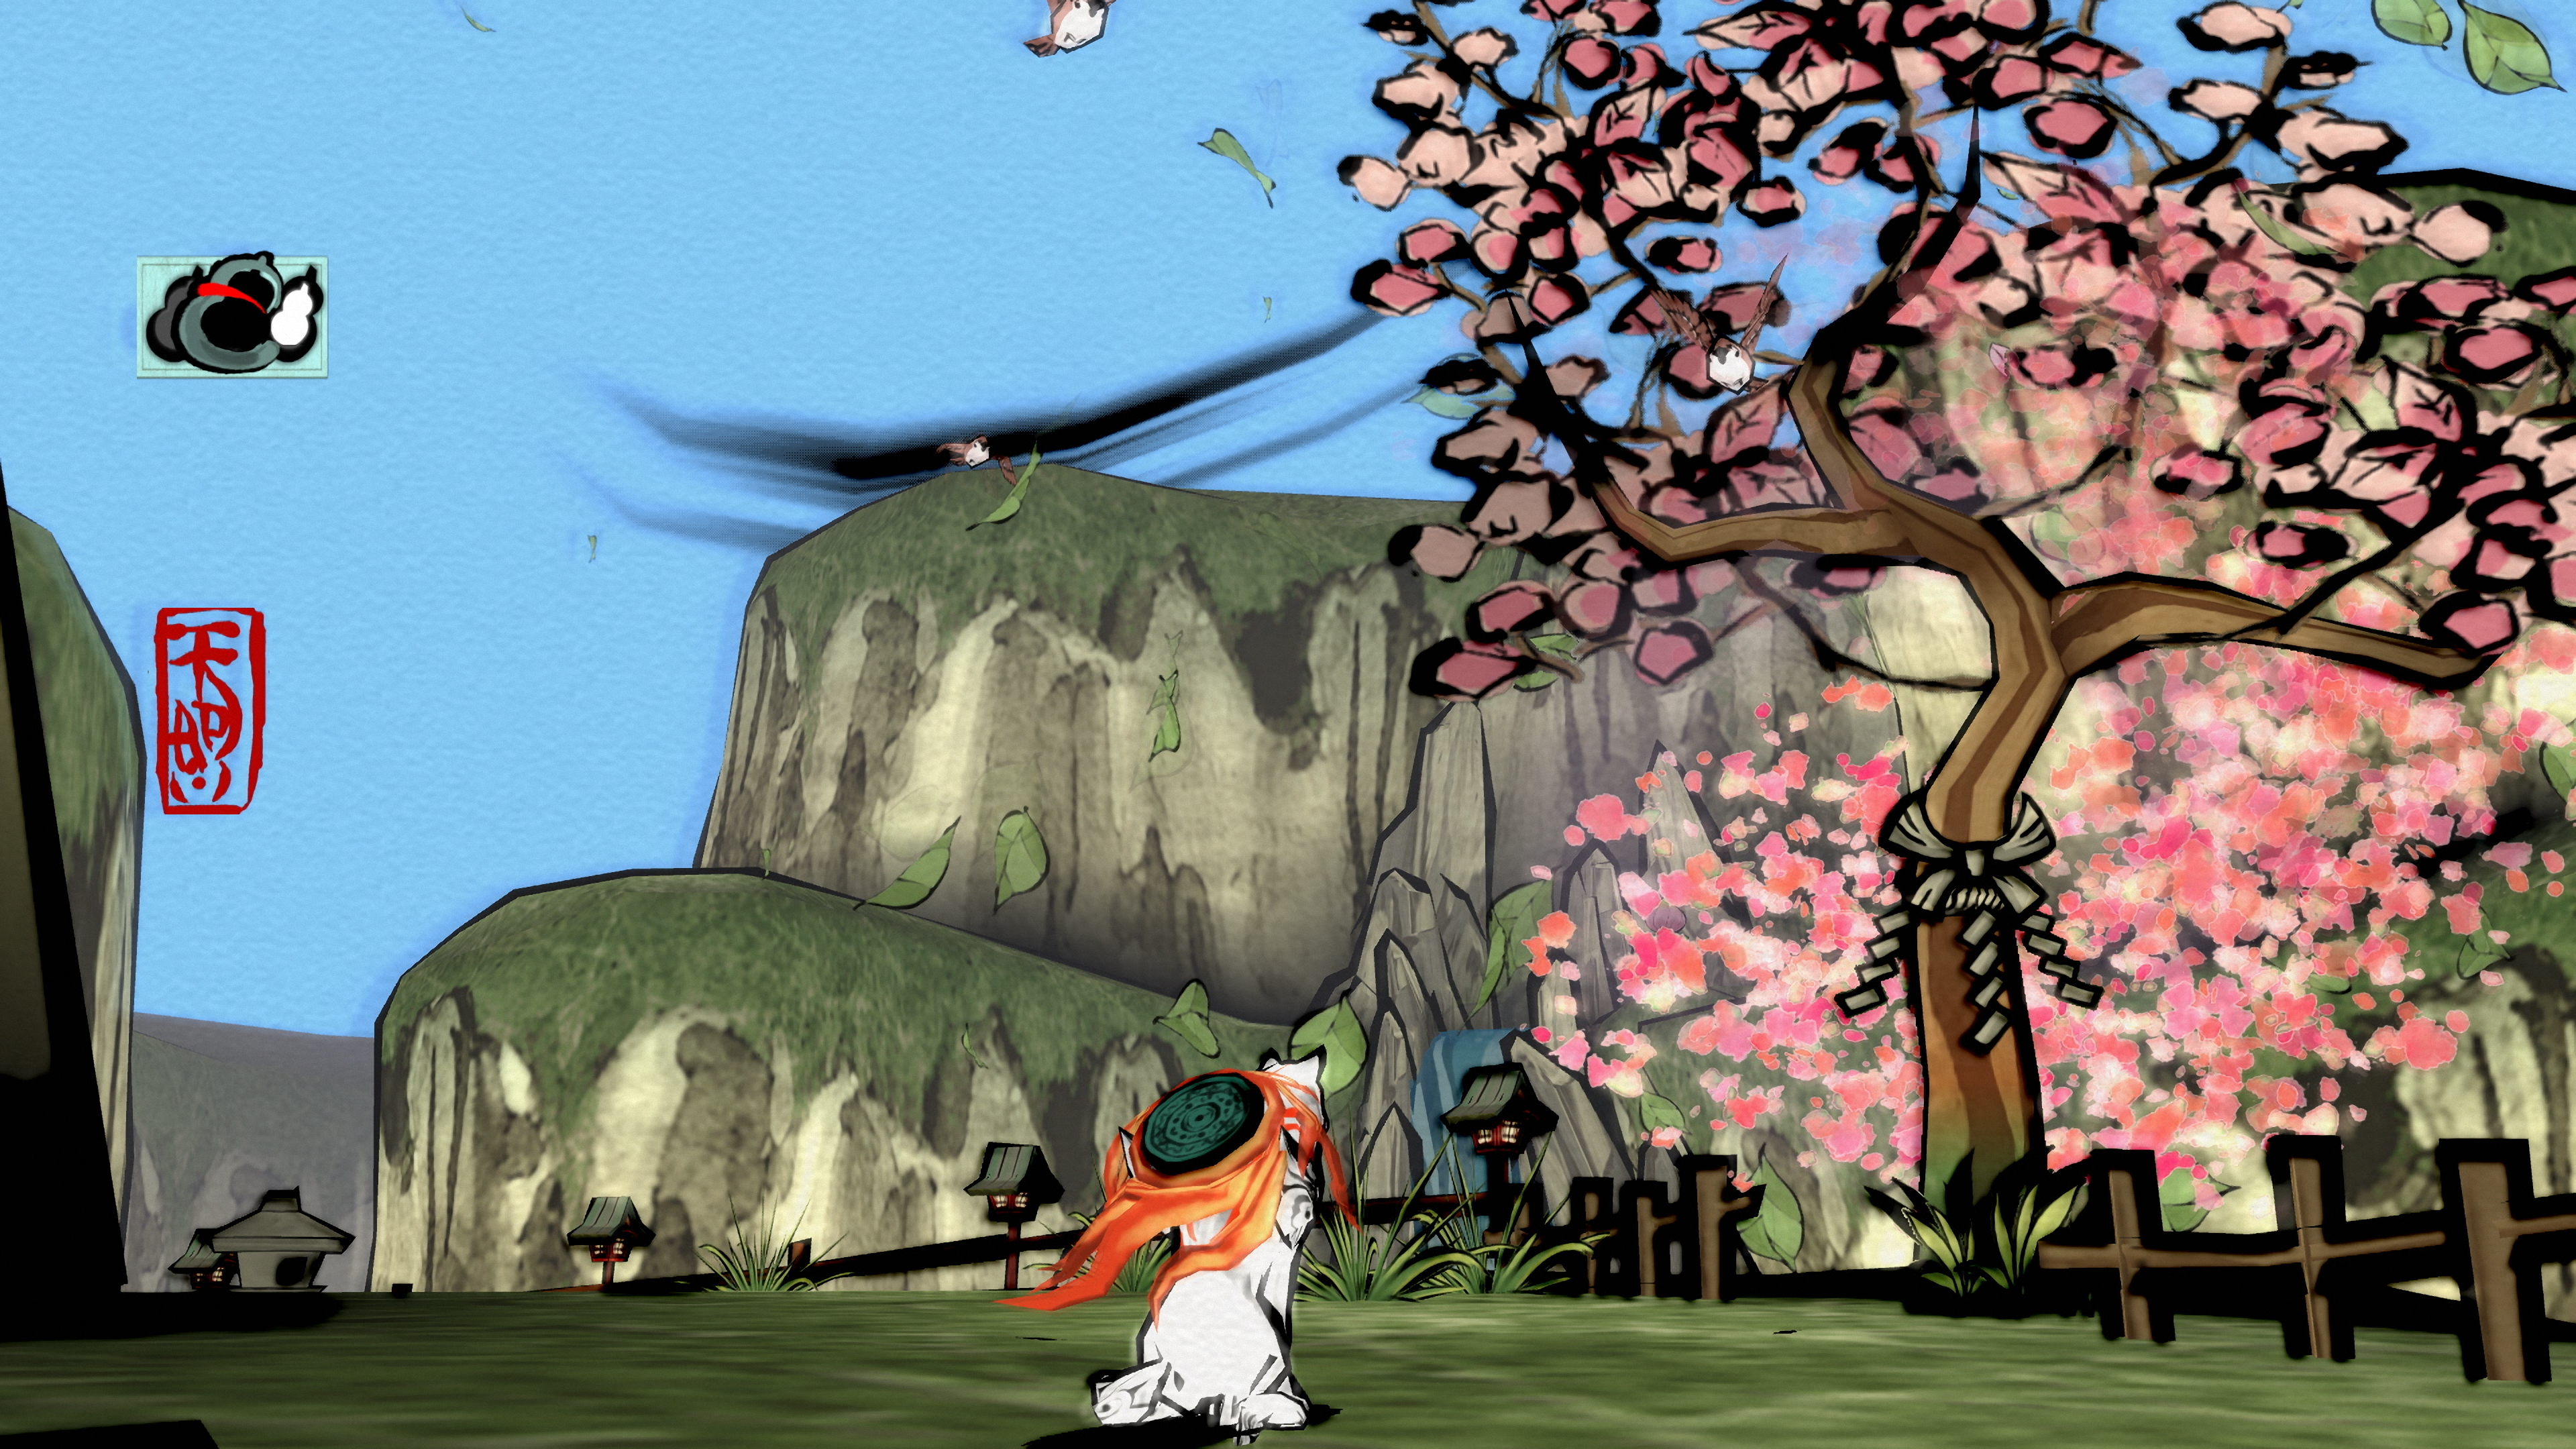 Okami Getting Re-Released On Current-Gen Platforms is a Shot at Reviving the Franchise